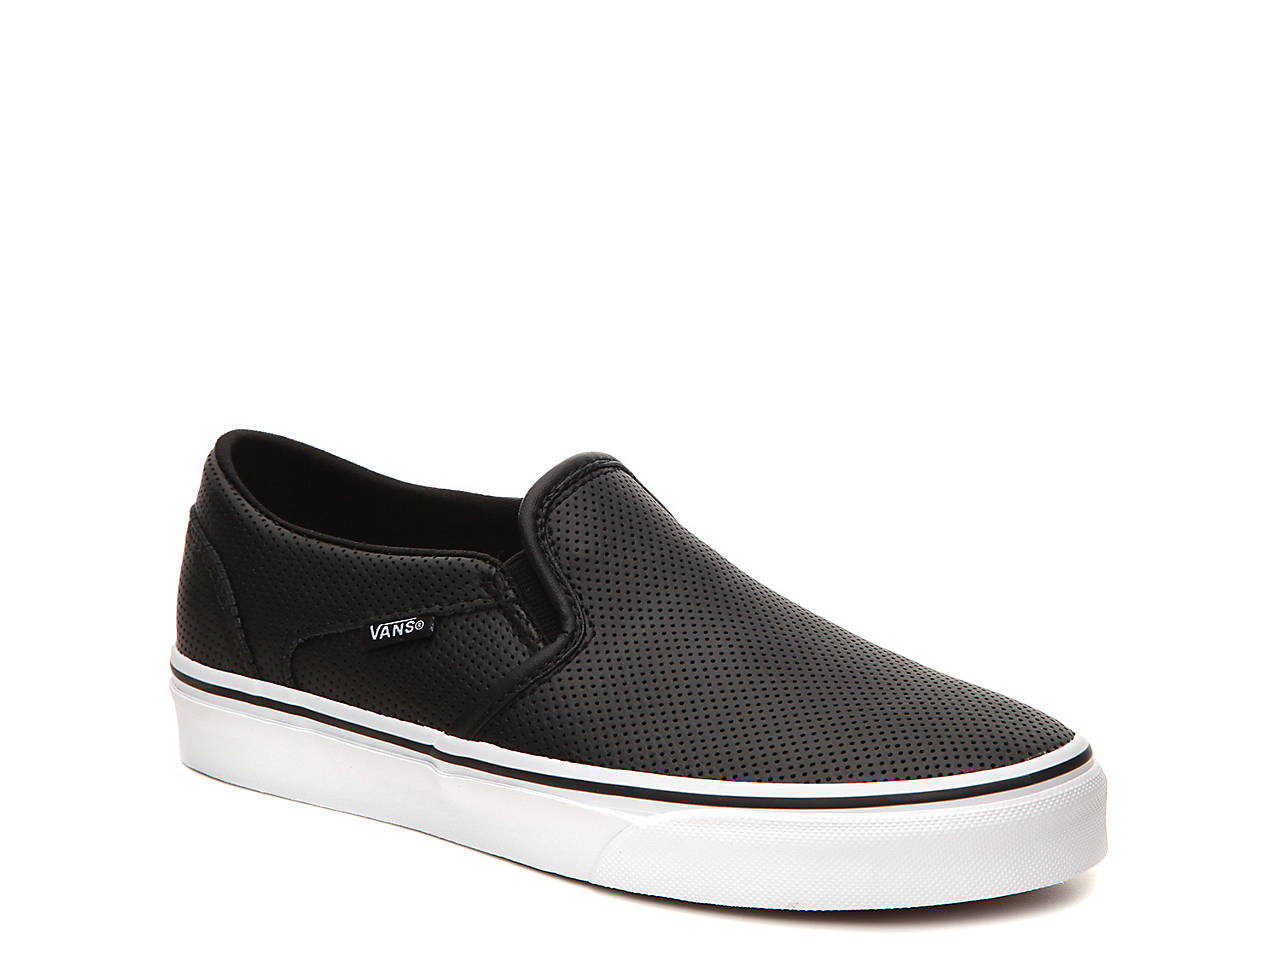 64fcca6e533 Vans Asher Perforated Slip-On Sneaker - Women s Women s Shoes